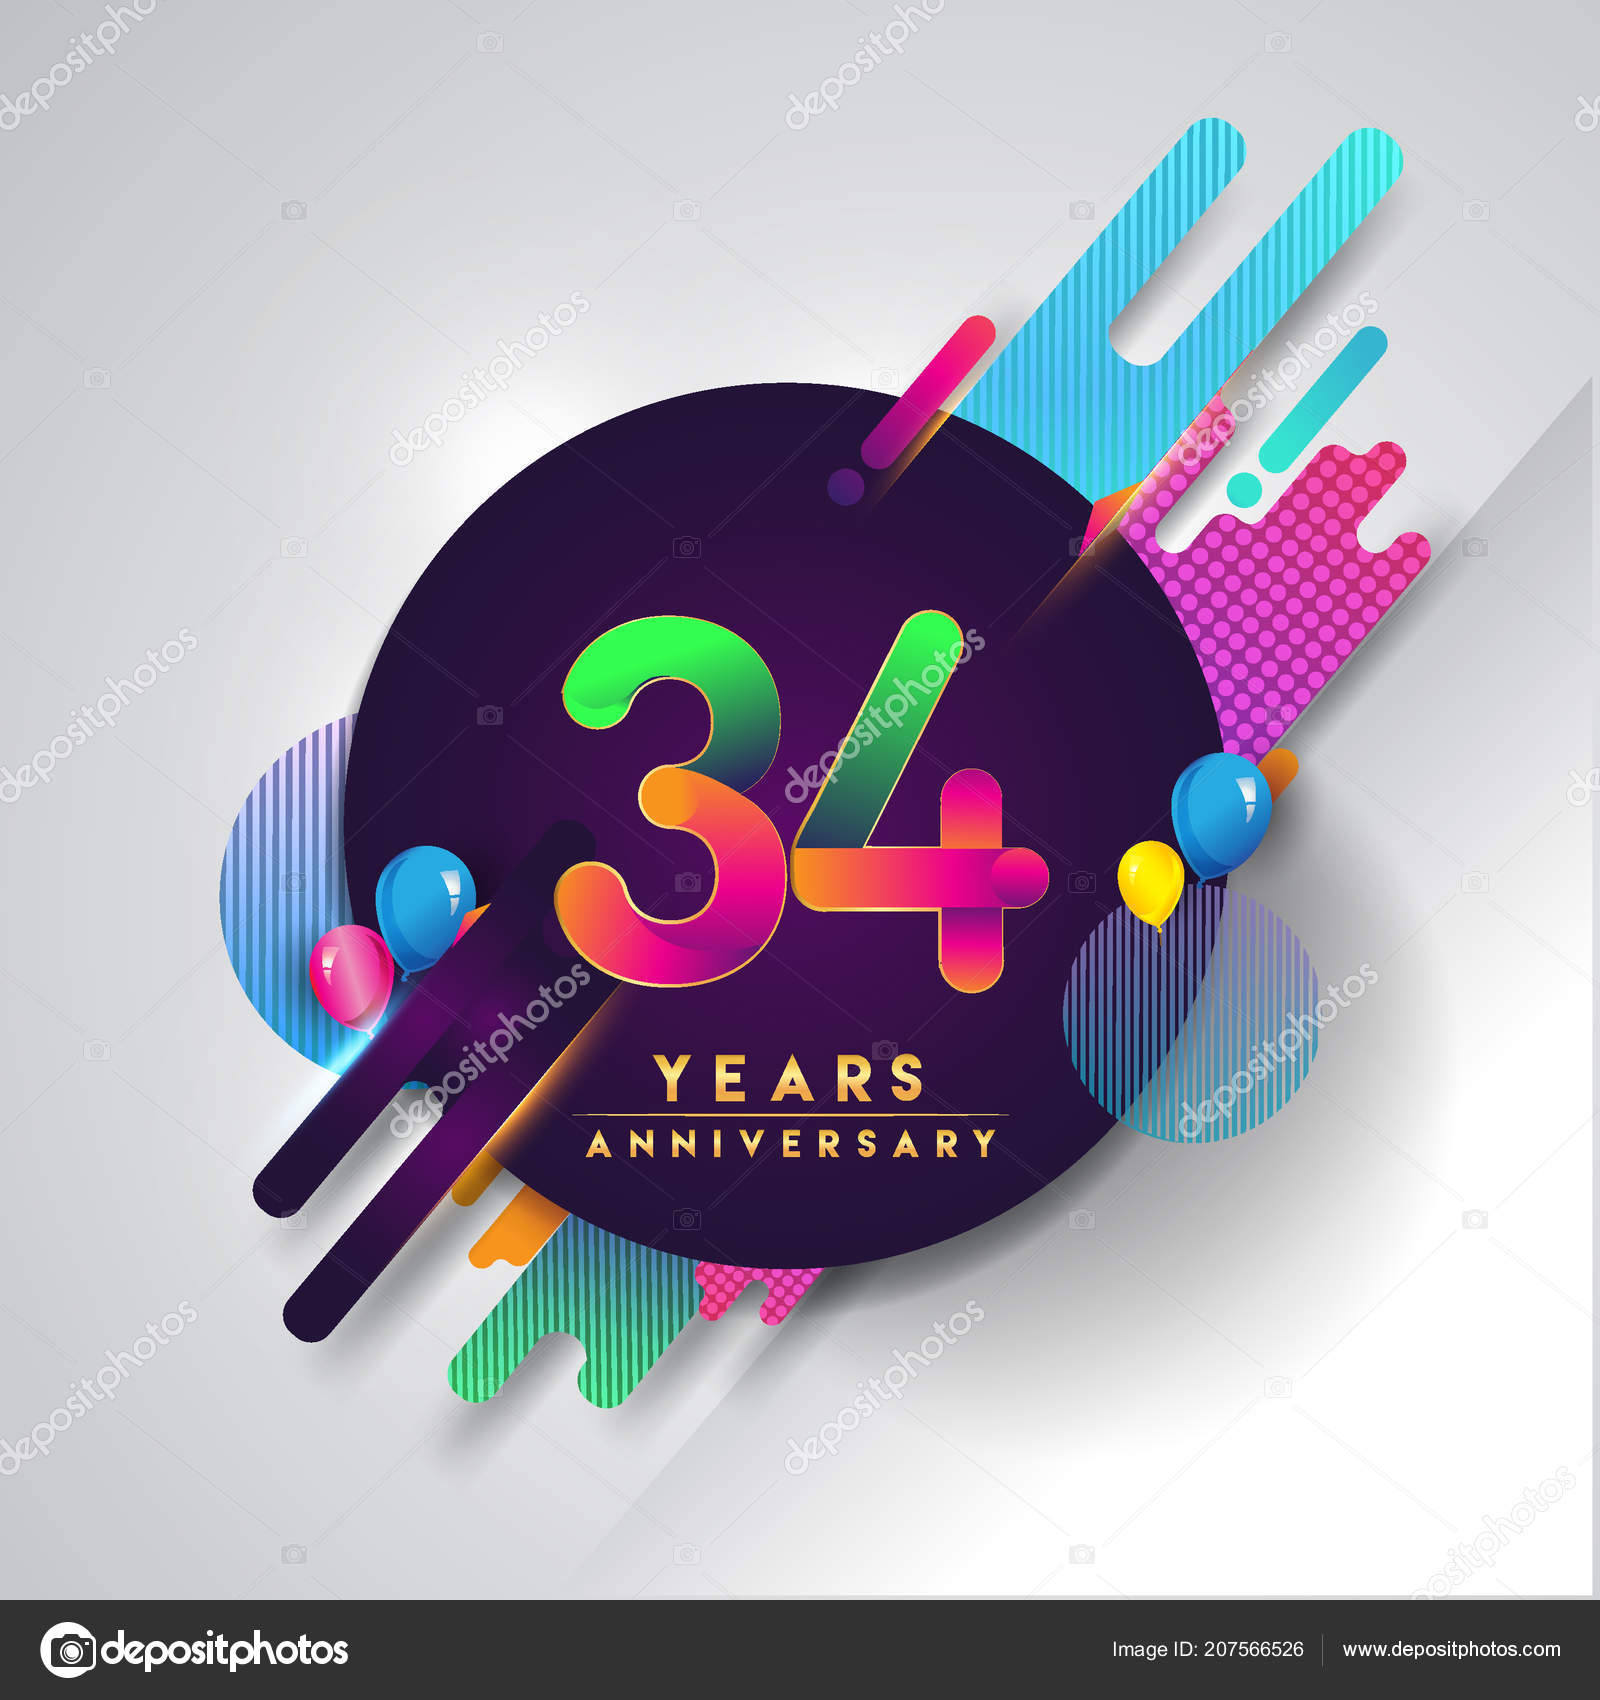 Anniversary Logo Colorful Abstract Background Vector Design